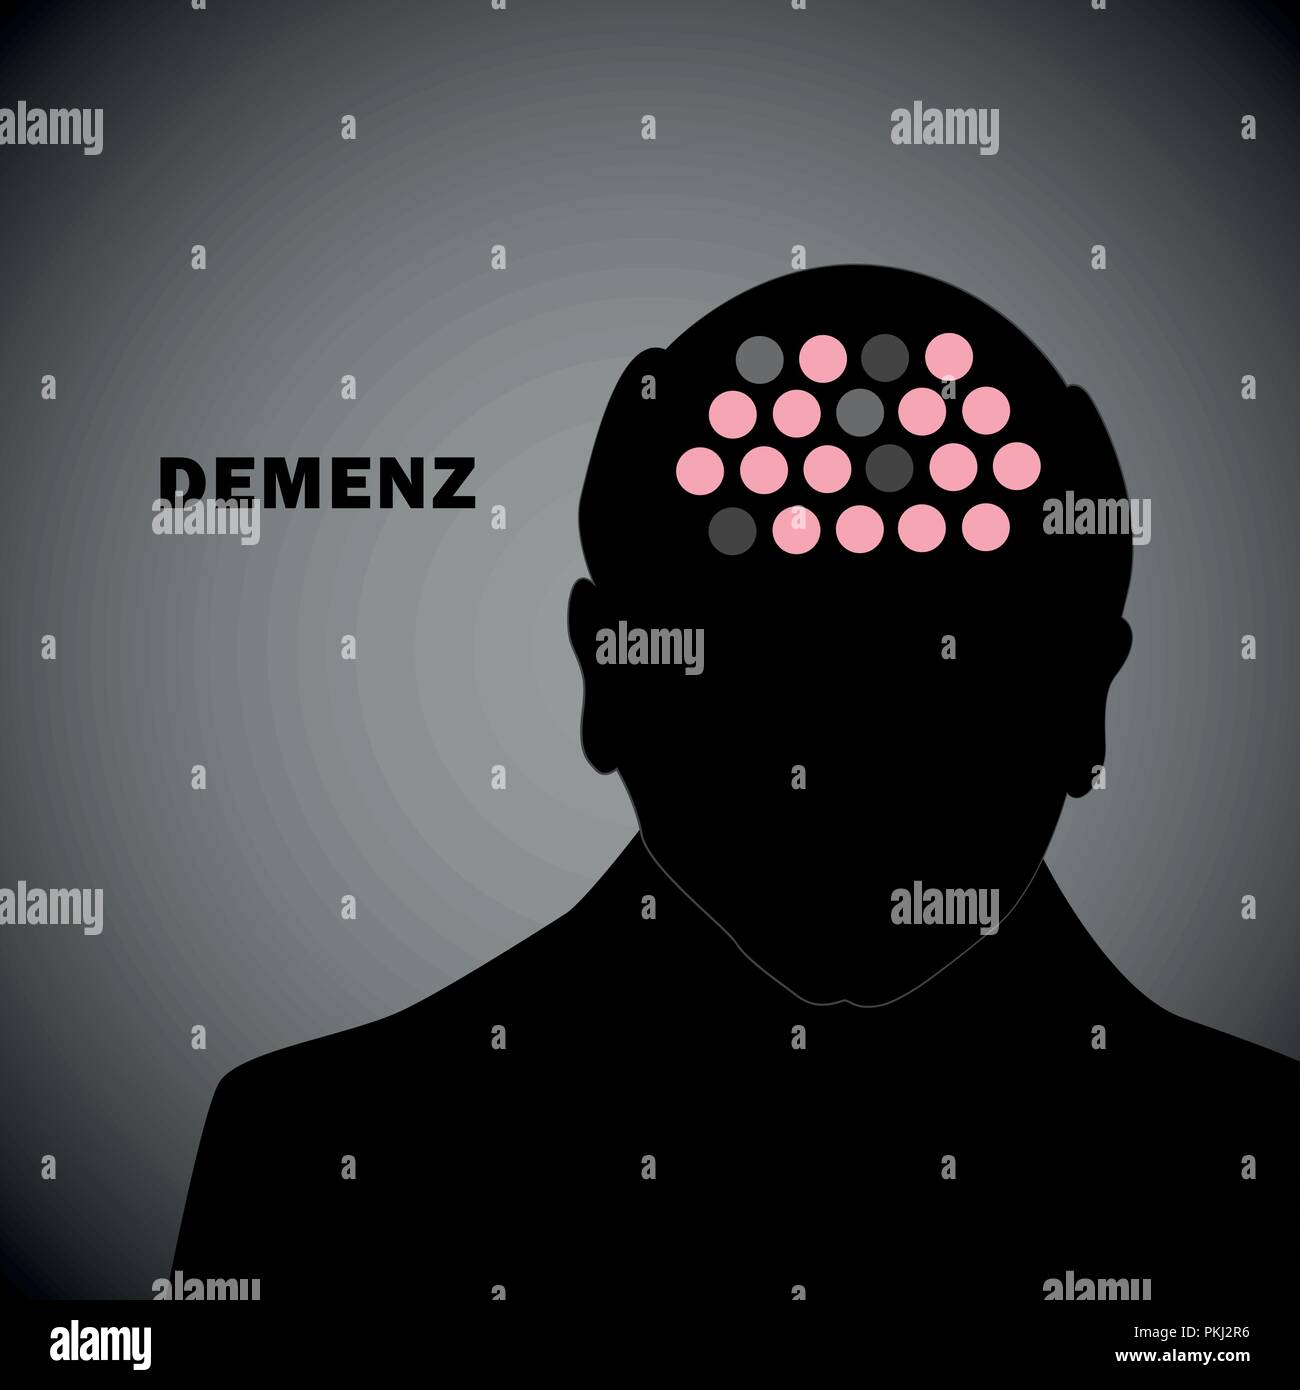 old man silhouette human head with dementia vector illustration EPS10 - Stock Image